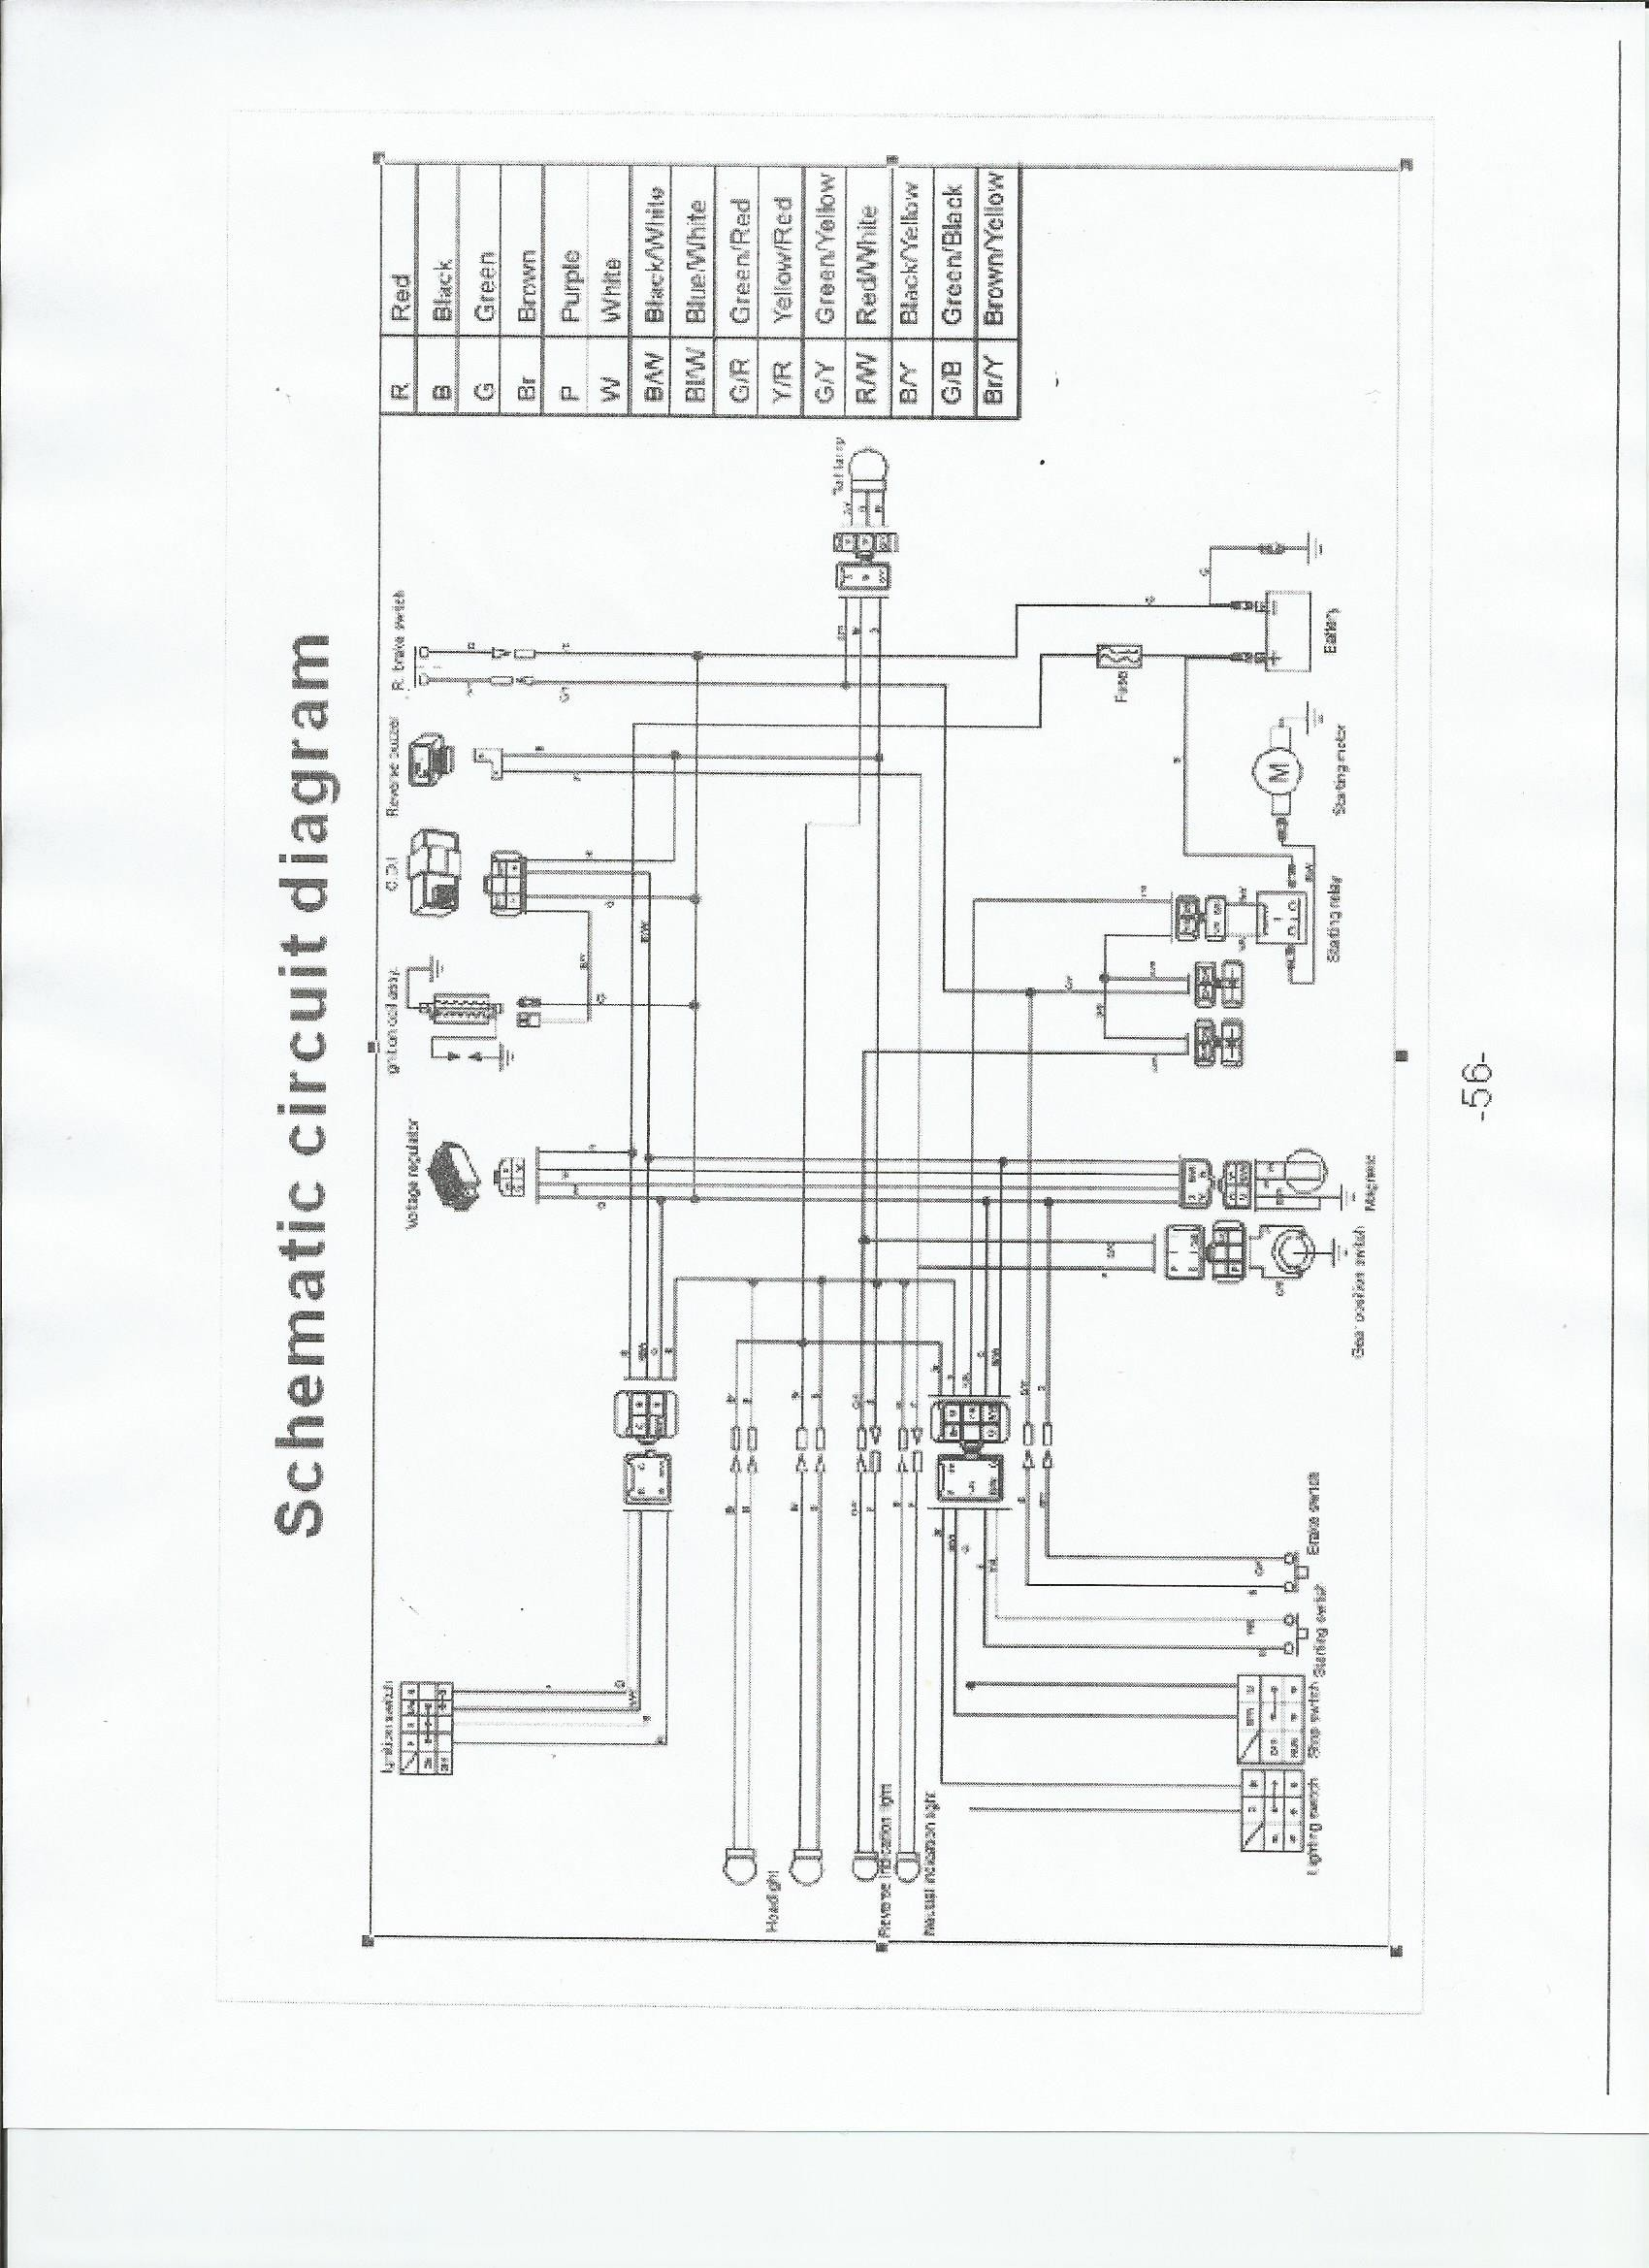 Marshin Atv 250 Wiring Diagram